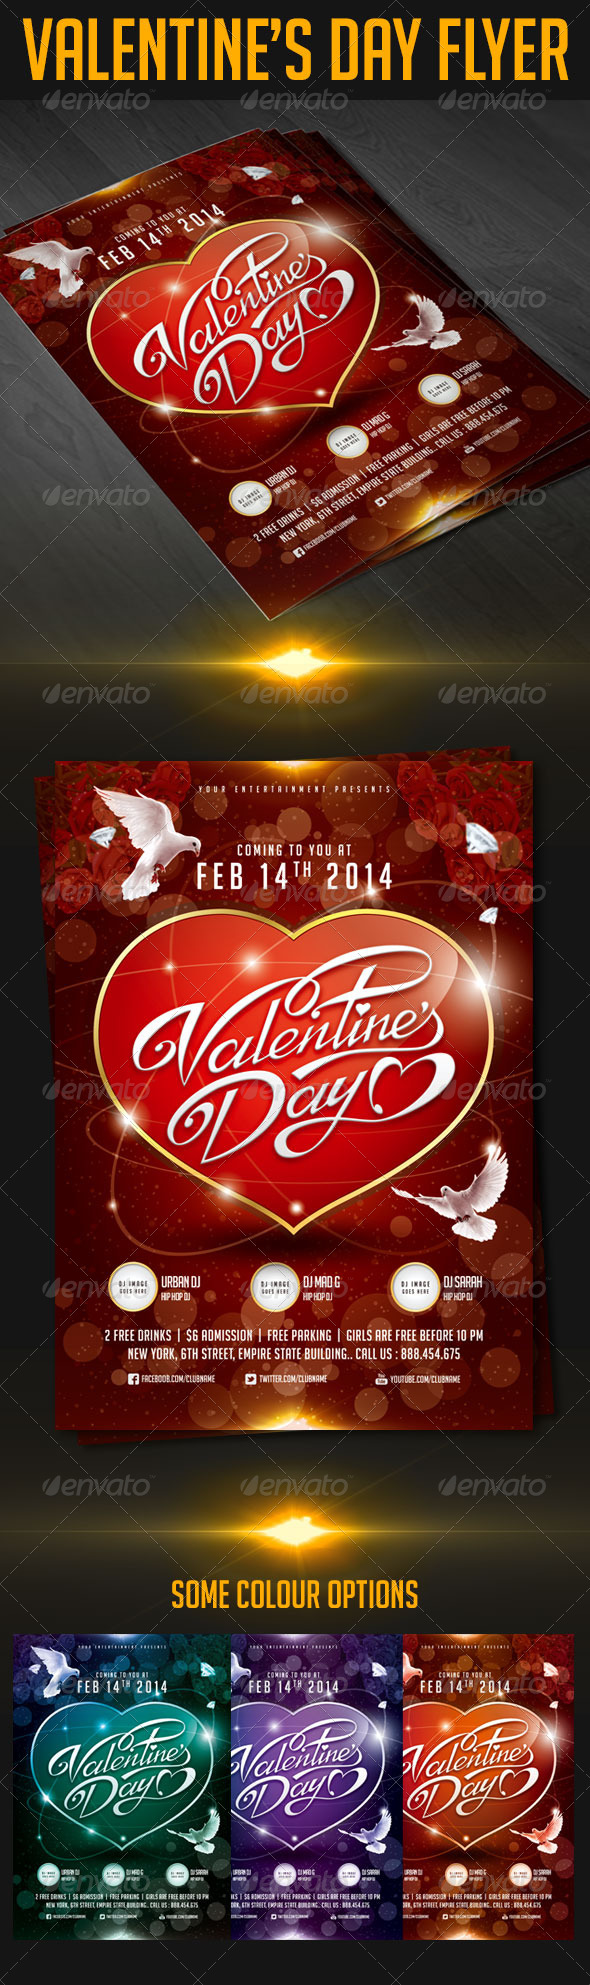 GraphicRiver Valentine s Day Flyer 6623483